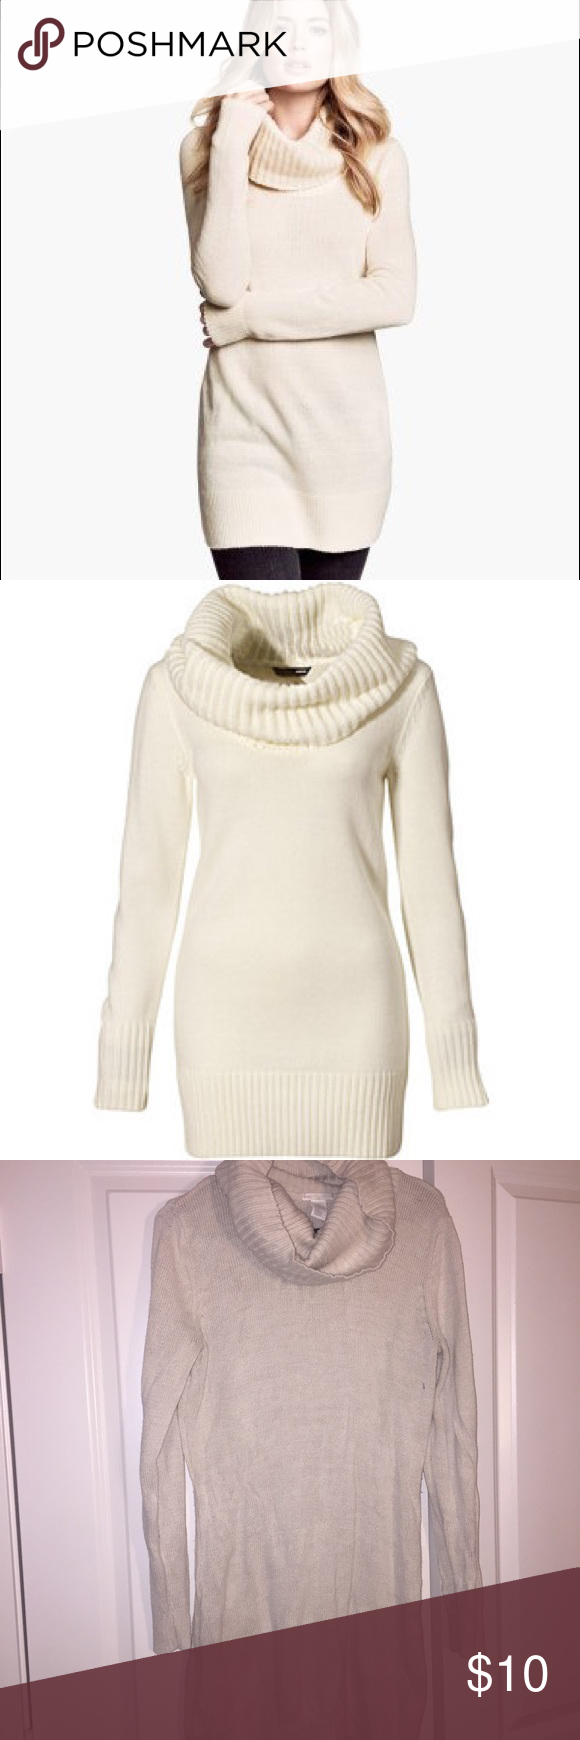 🌻SALE! Like new H&M Cowl neck sweater dress! Like new cream ...